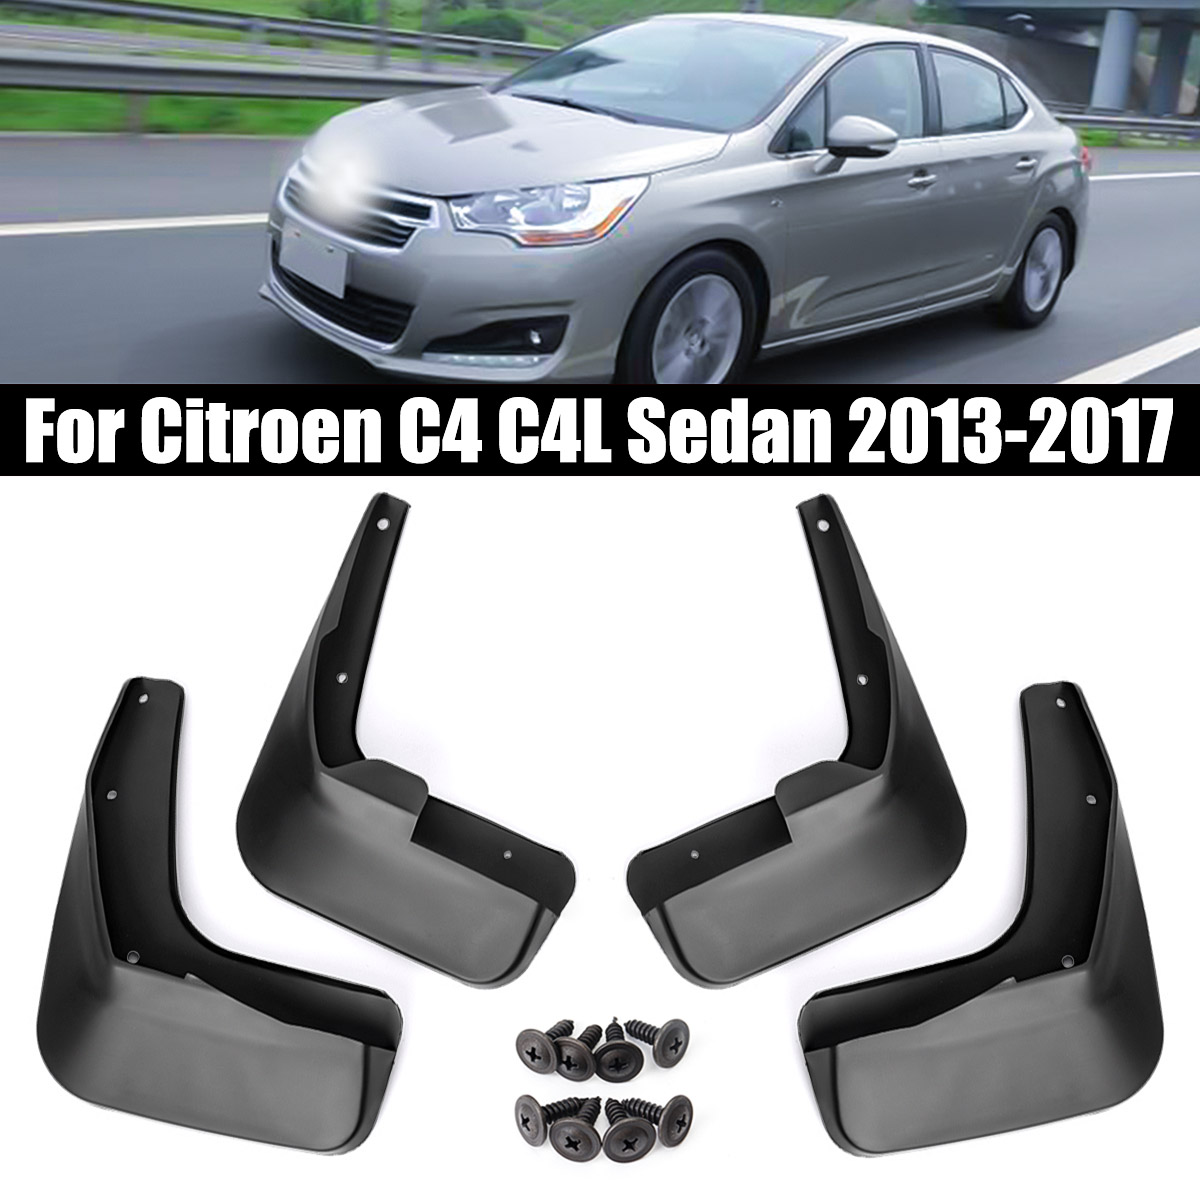 Car Front Rear Mudflaps Mud Flaps Mudguards Splash Guards For Fender For <font><b>Citroen</b></font> <font><b>C4</b></font> Sedan C4L <font><b>C4</b></font> L 2013 2014 2015 <font><b>2016</b></font> 2017 image